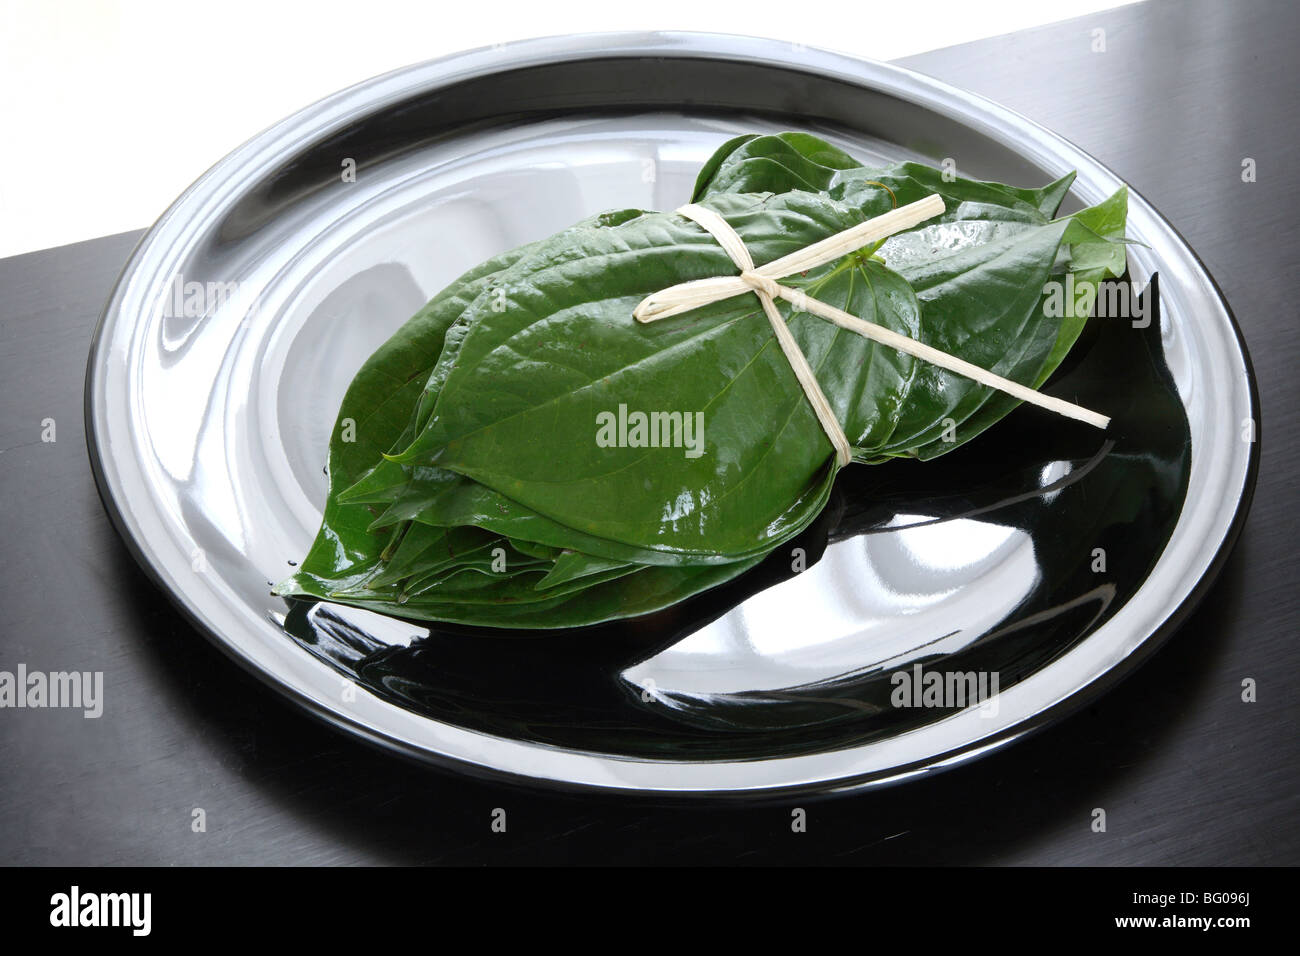 Betel vine leaves (Piper betle), the Piperaceae family, valued both as a mild stimulant and for its medicinal properties, - Stock Image